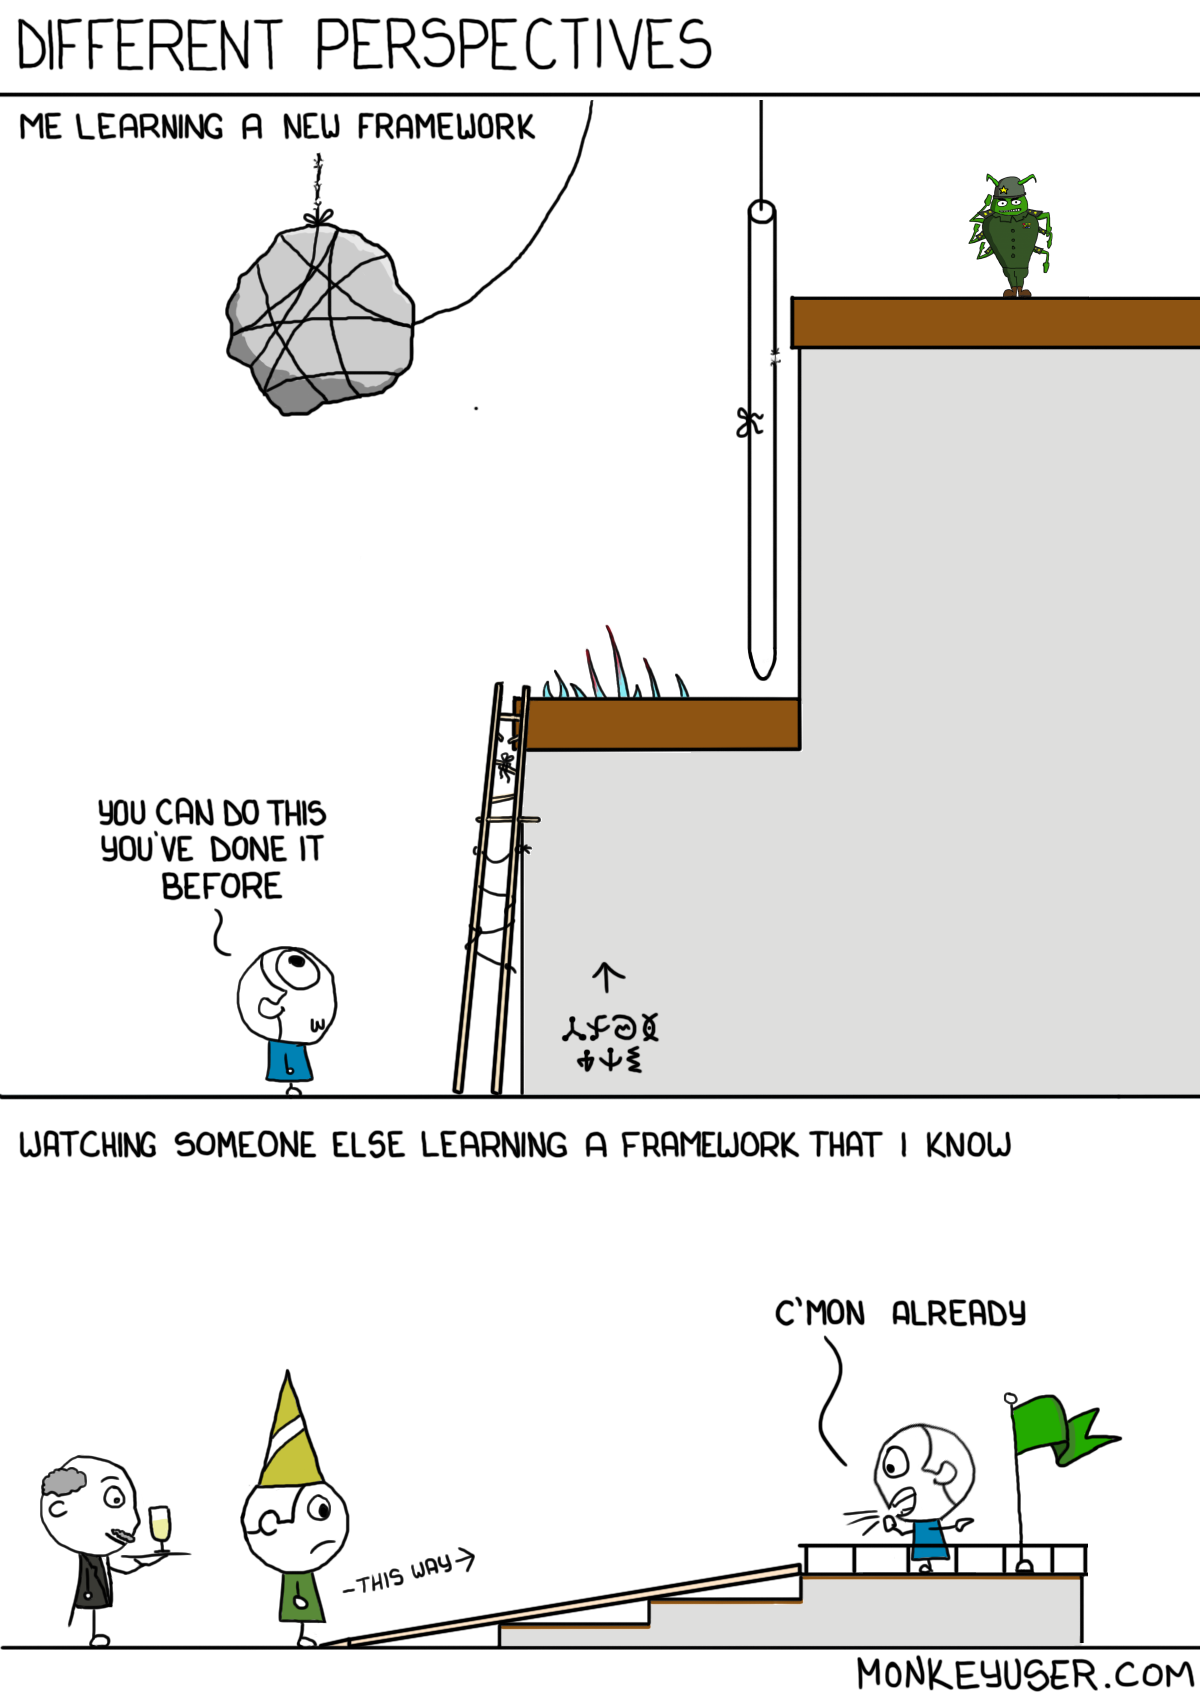 This applies for all routing frameworks